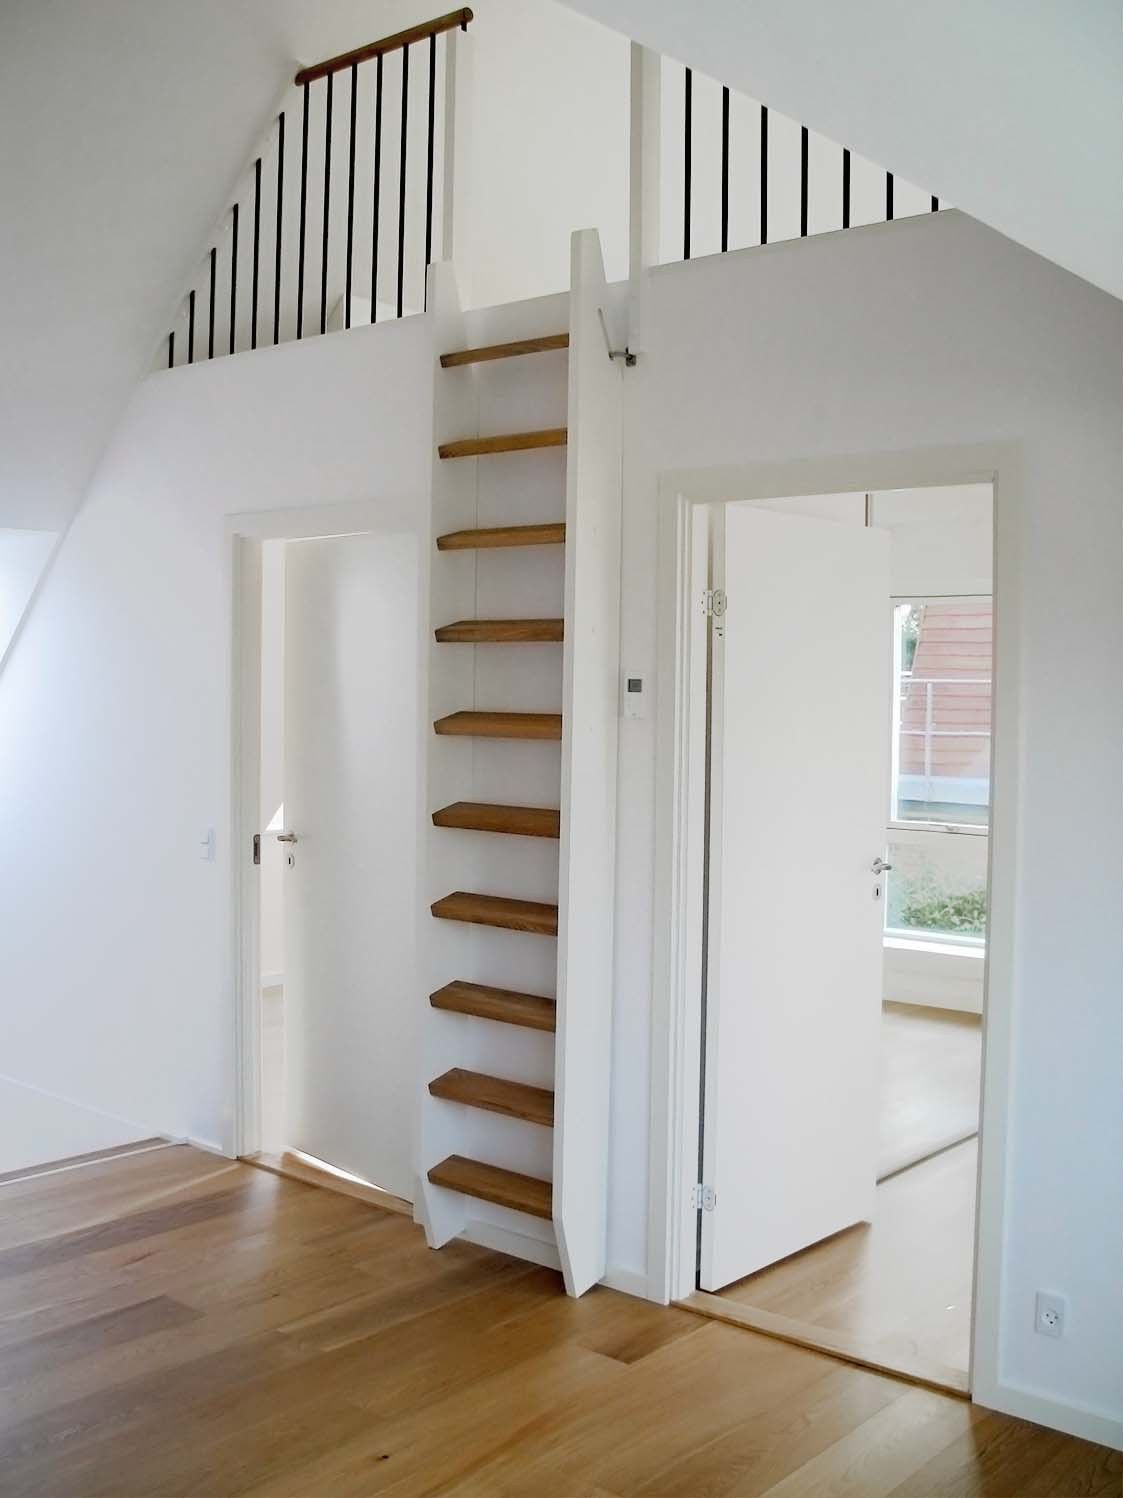 Dachboden Wendeltreppe Stairs Makeover In 2020 | Tiny House Stairs, Loft House, Loft Railing